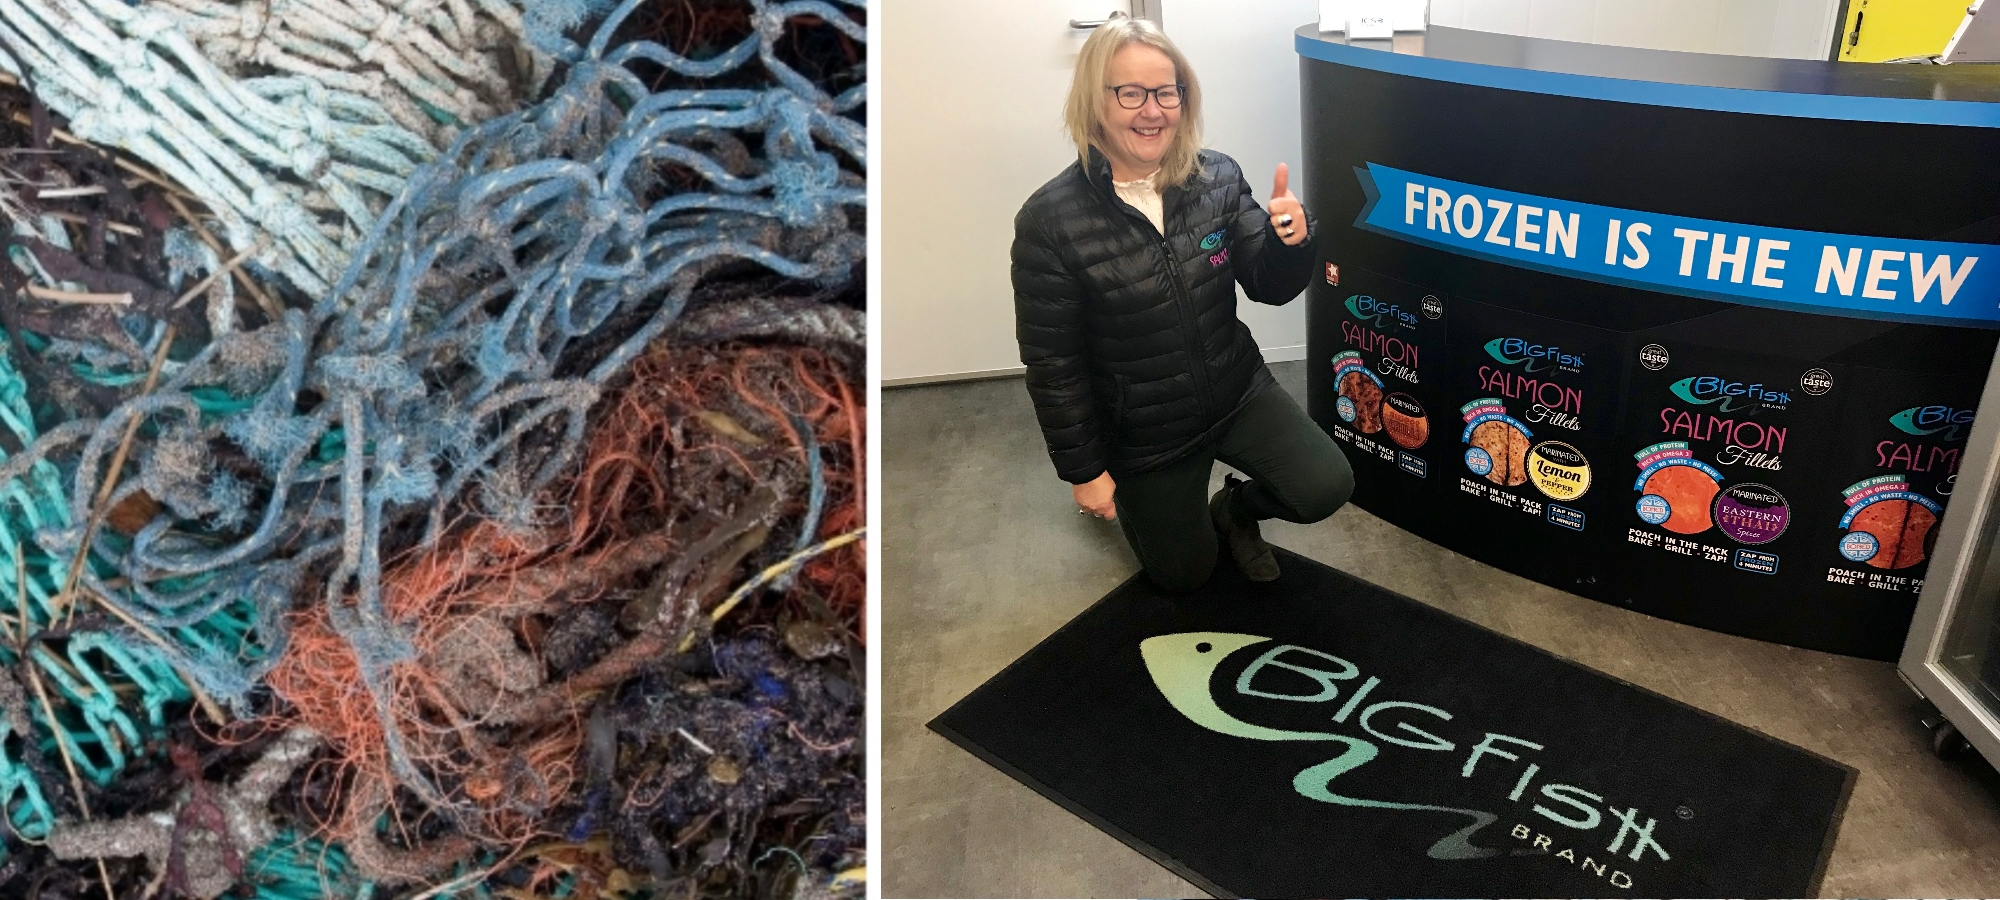 Our quality manager, Ann, with one of the new mats